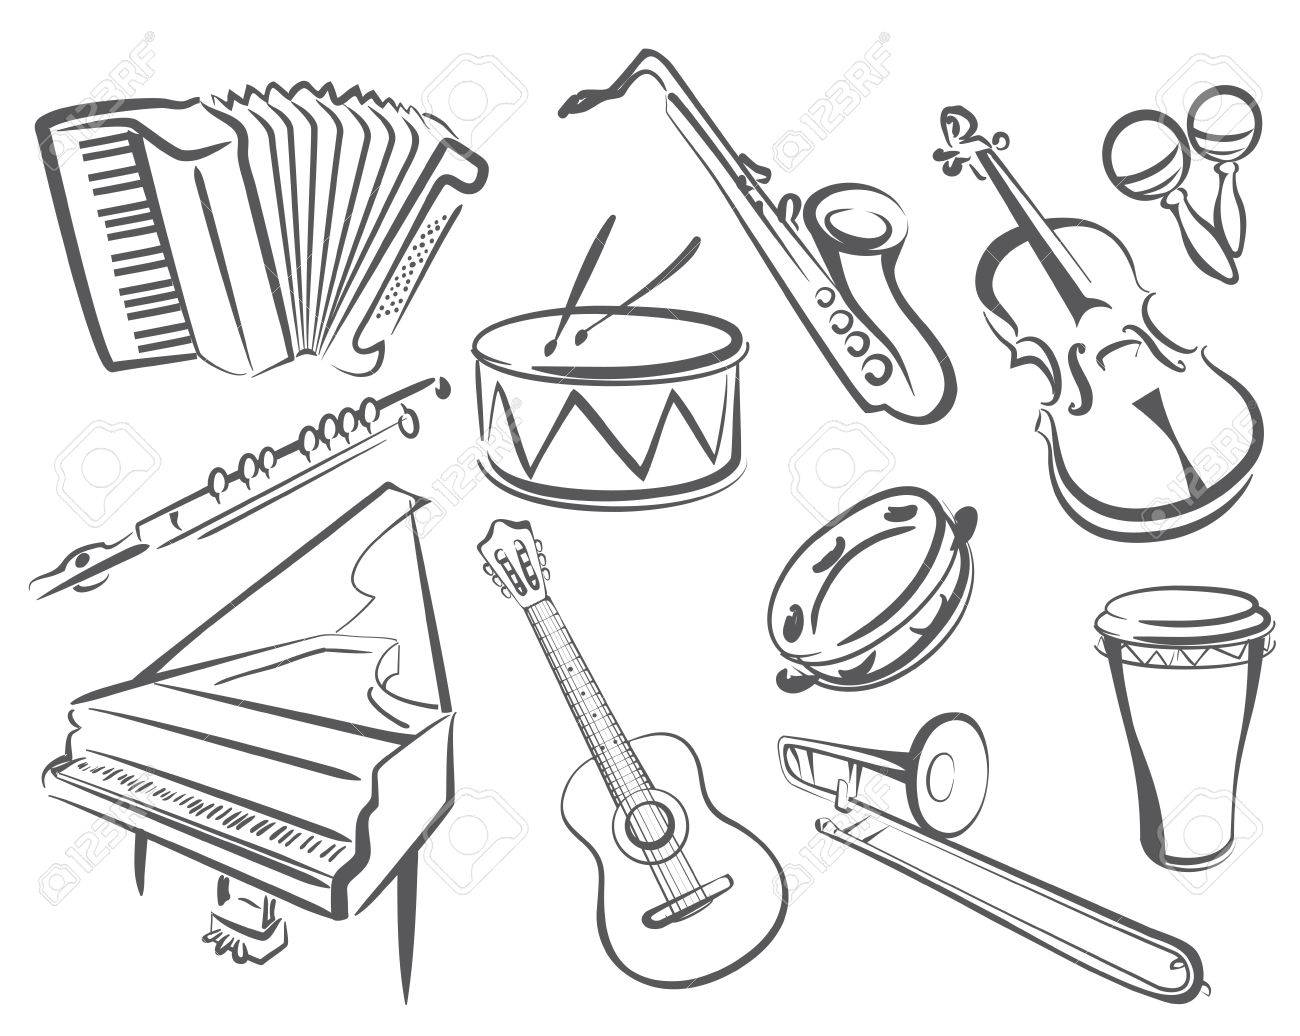 musical instruments set of icons in simple lines royalty free